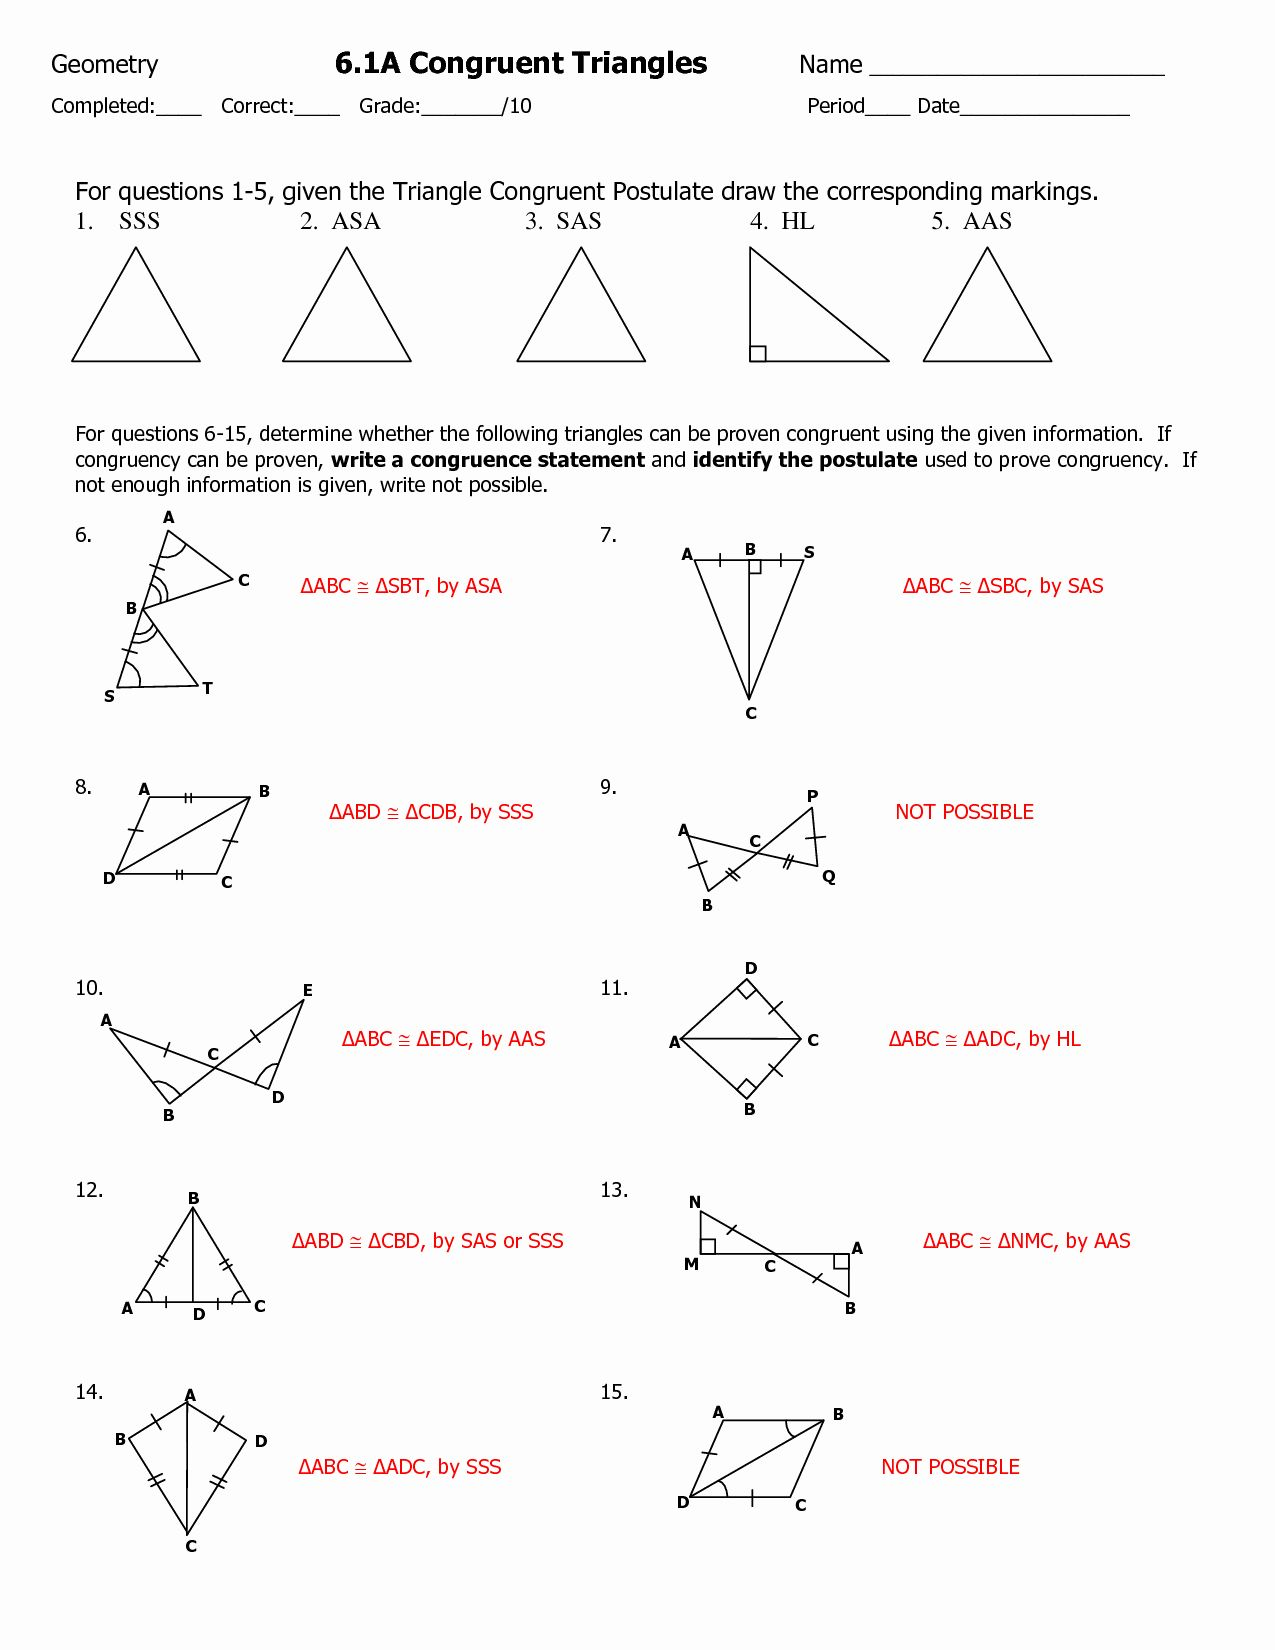 50 Congruent Triangles Worksheet Answers In